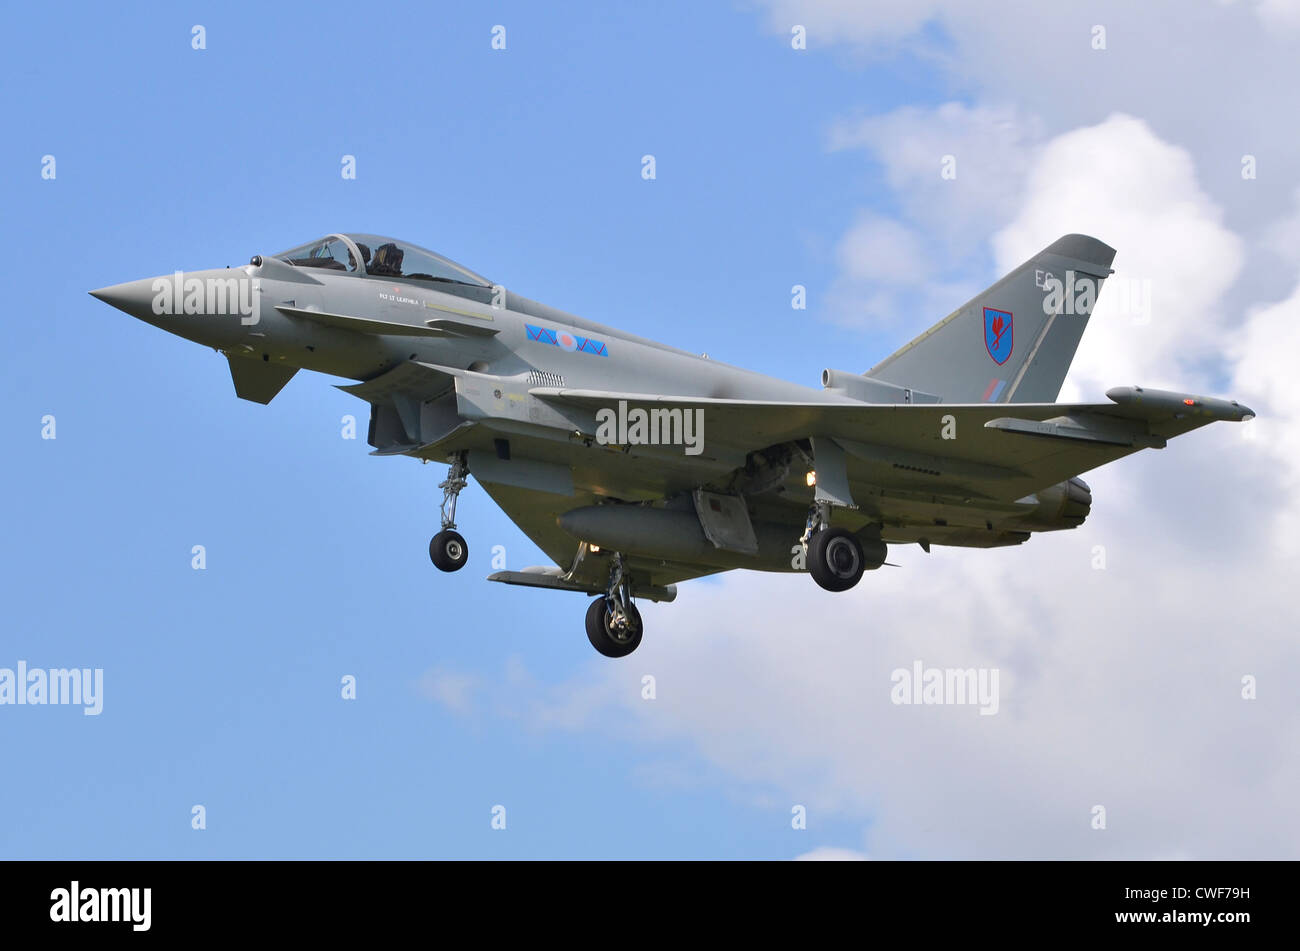 Eurofighter Typhoon FGR4 aircraft operated by the RAF on approach for landing at RAF Fairford - Stock Image